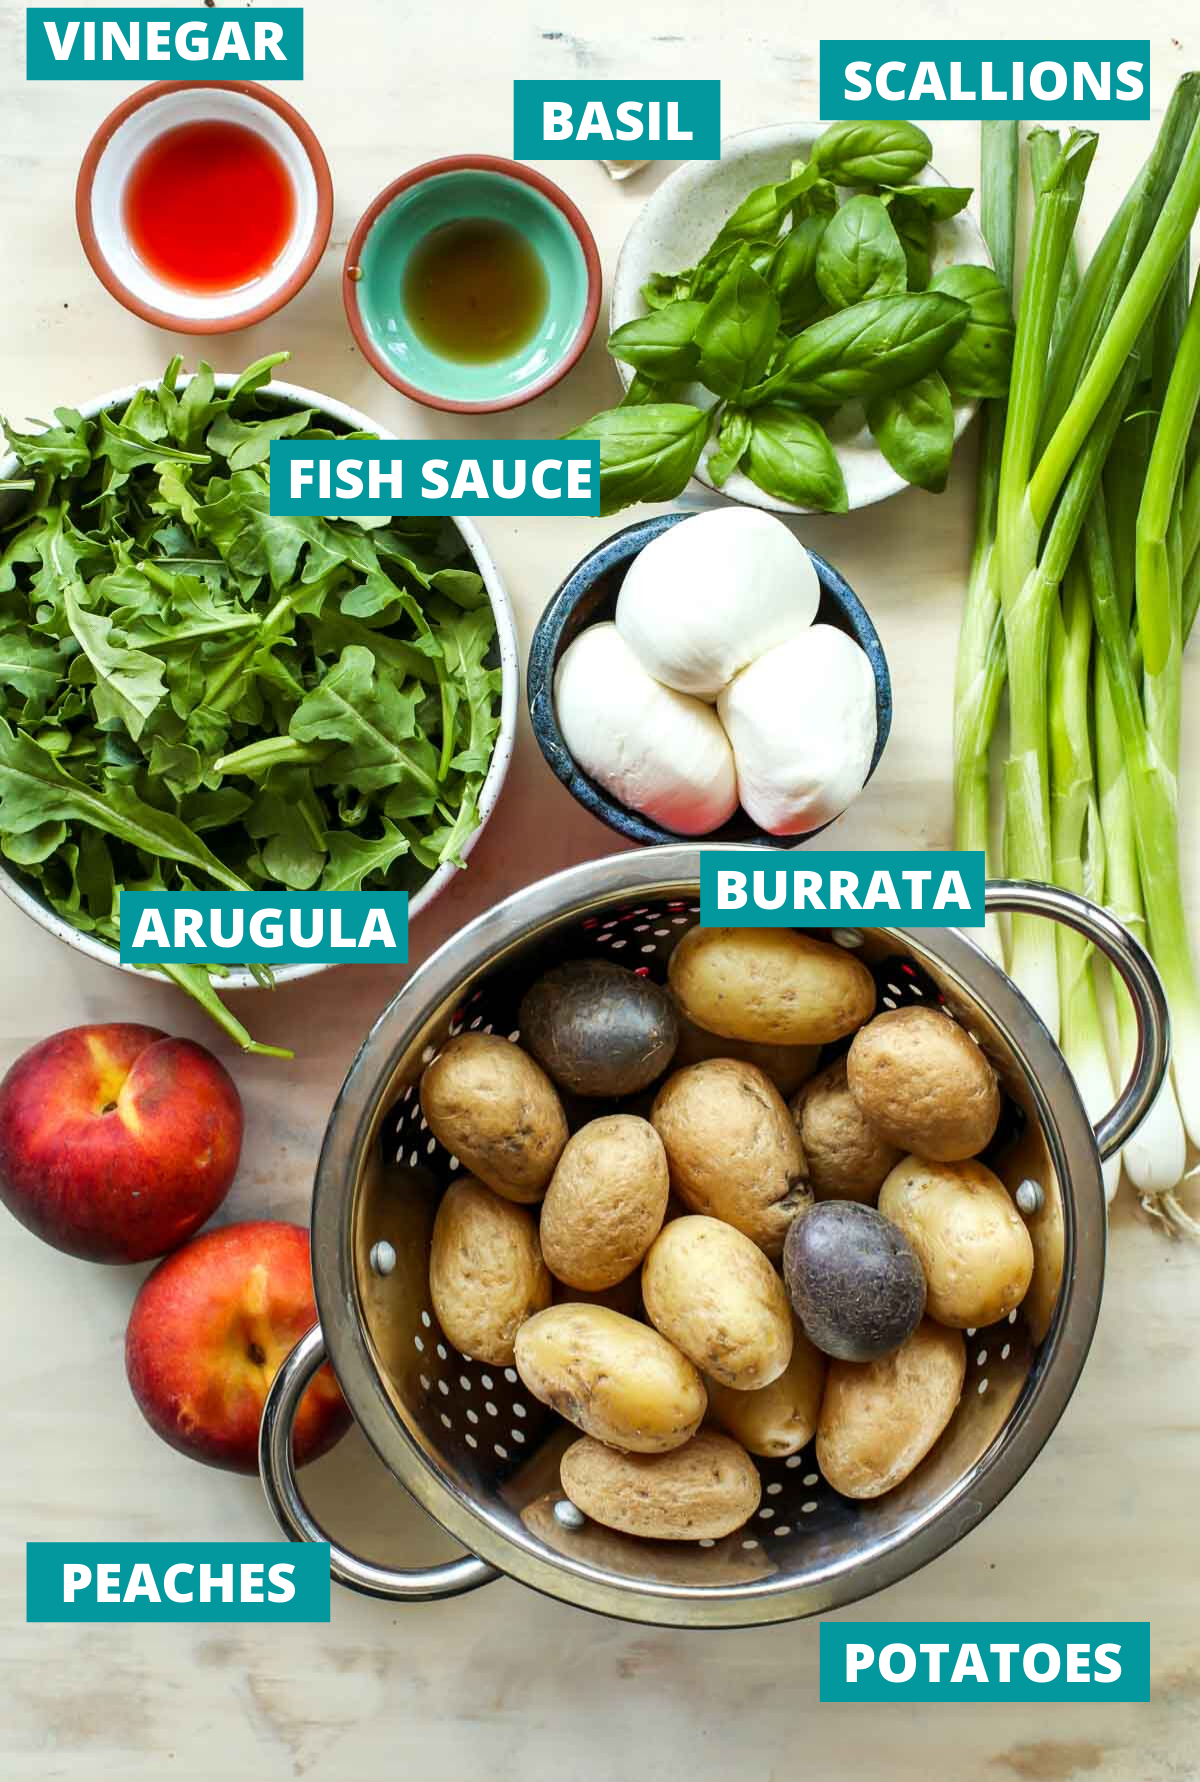 Baby potatoes, arugula, peaches, and burrata in separate bowls with ingredient tags